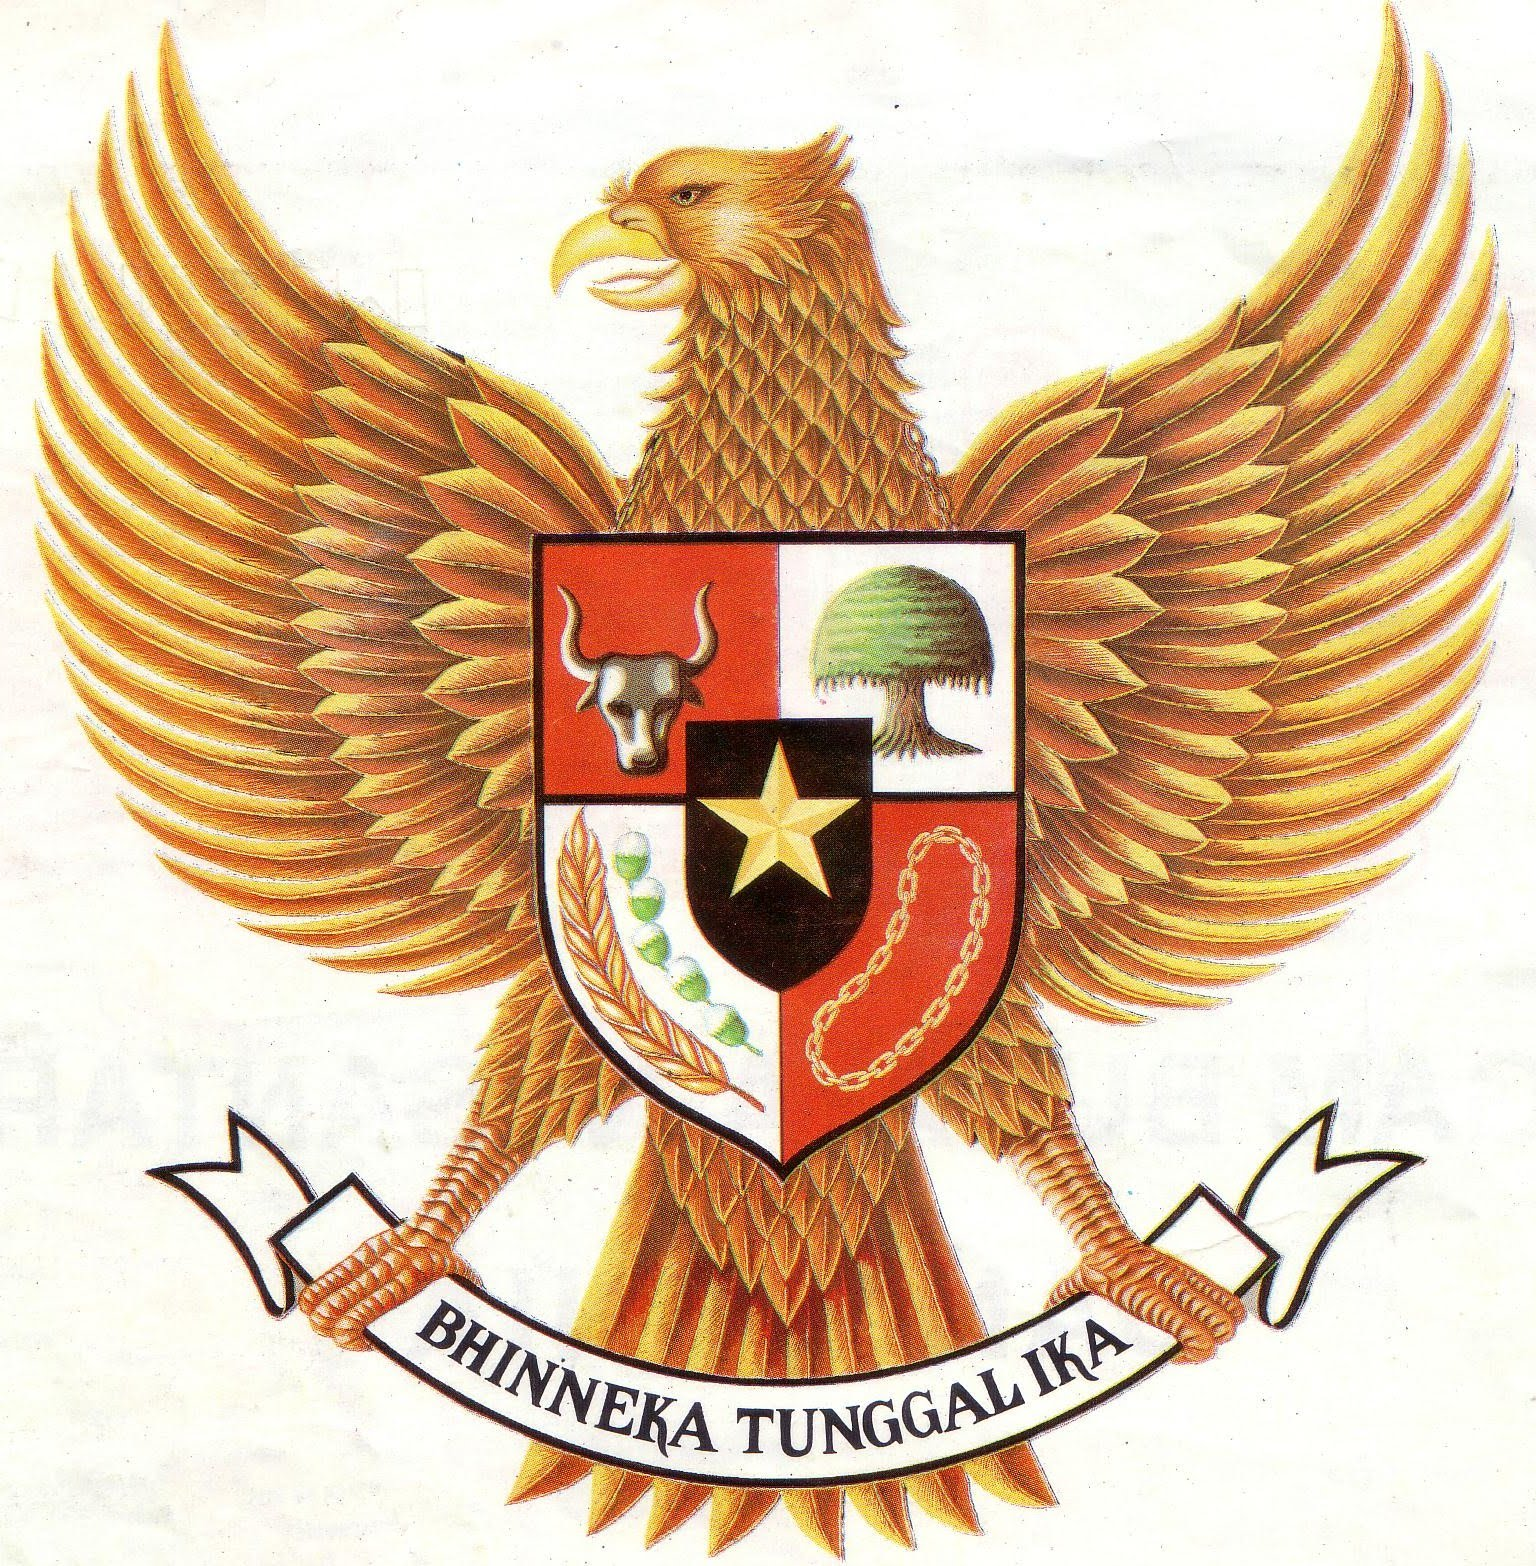 Gambar Download Elementary Education Bendera Merah Putih Garuda Pin Pancasila